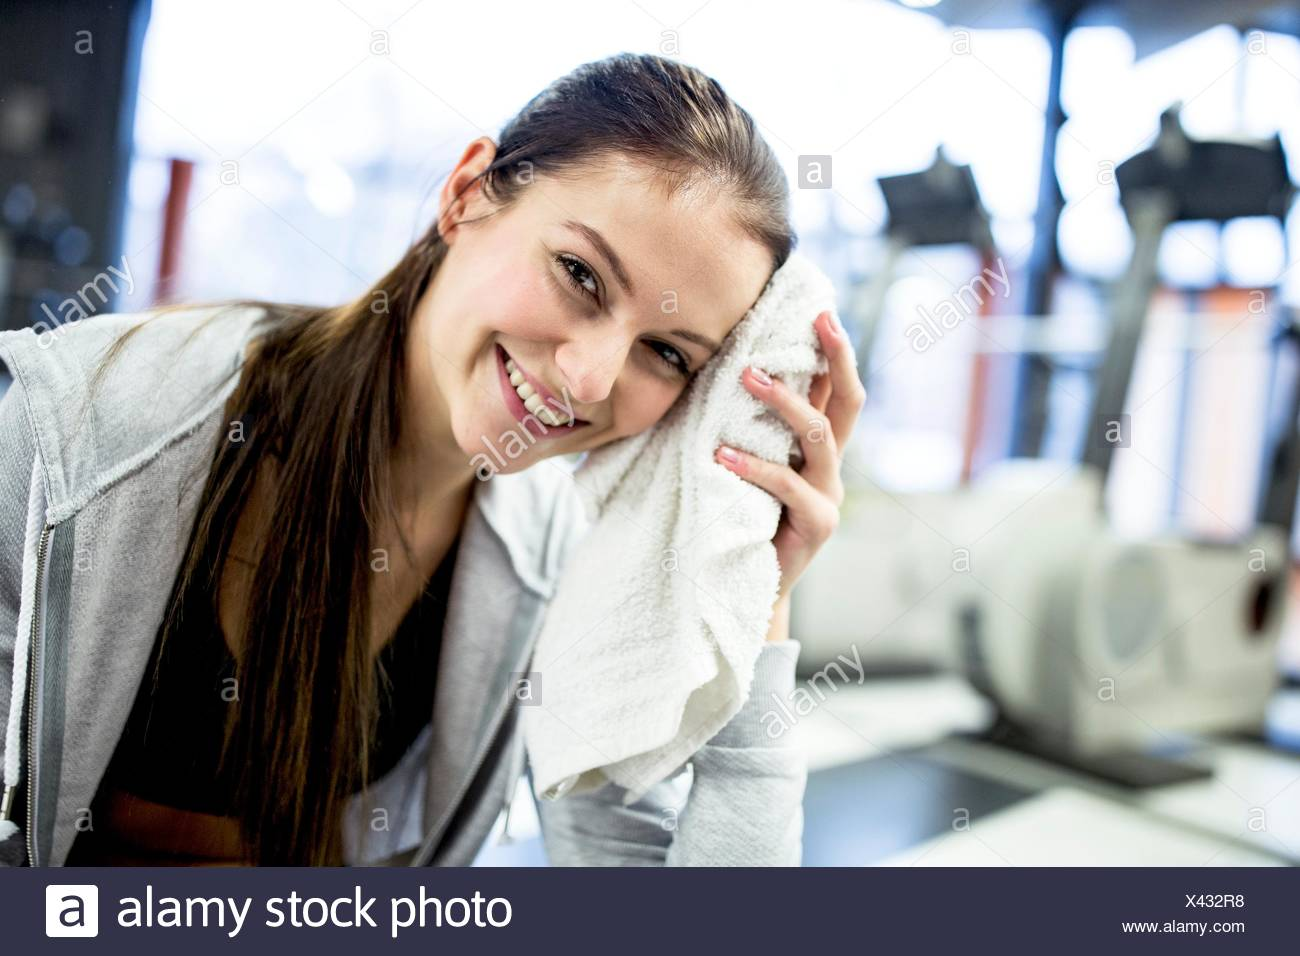 PROPERTY RELEASED. MODEL RELEASED. Portrait young woman wiping her sweat after workout in gym. - Stock Image